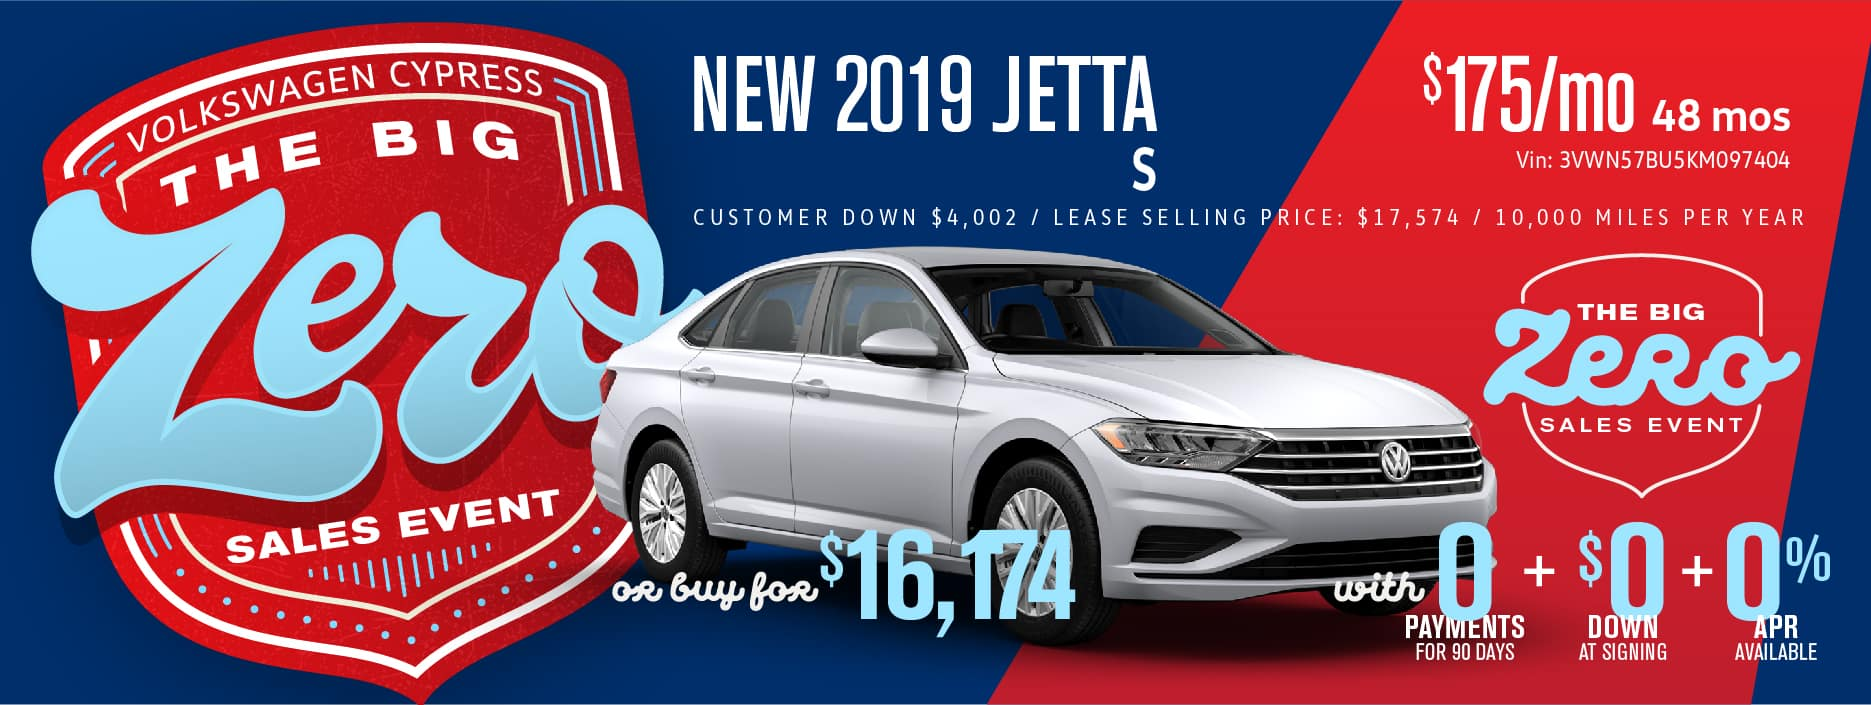 Get the Jetta for Zero Down and 0 payments 90 days!